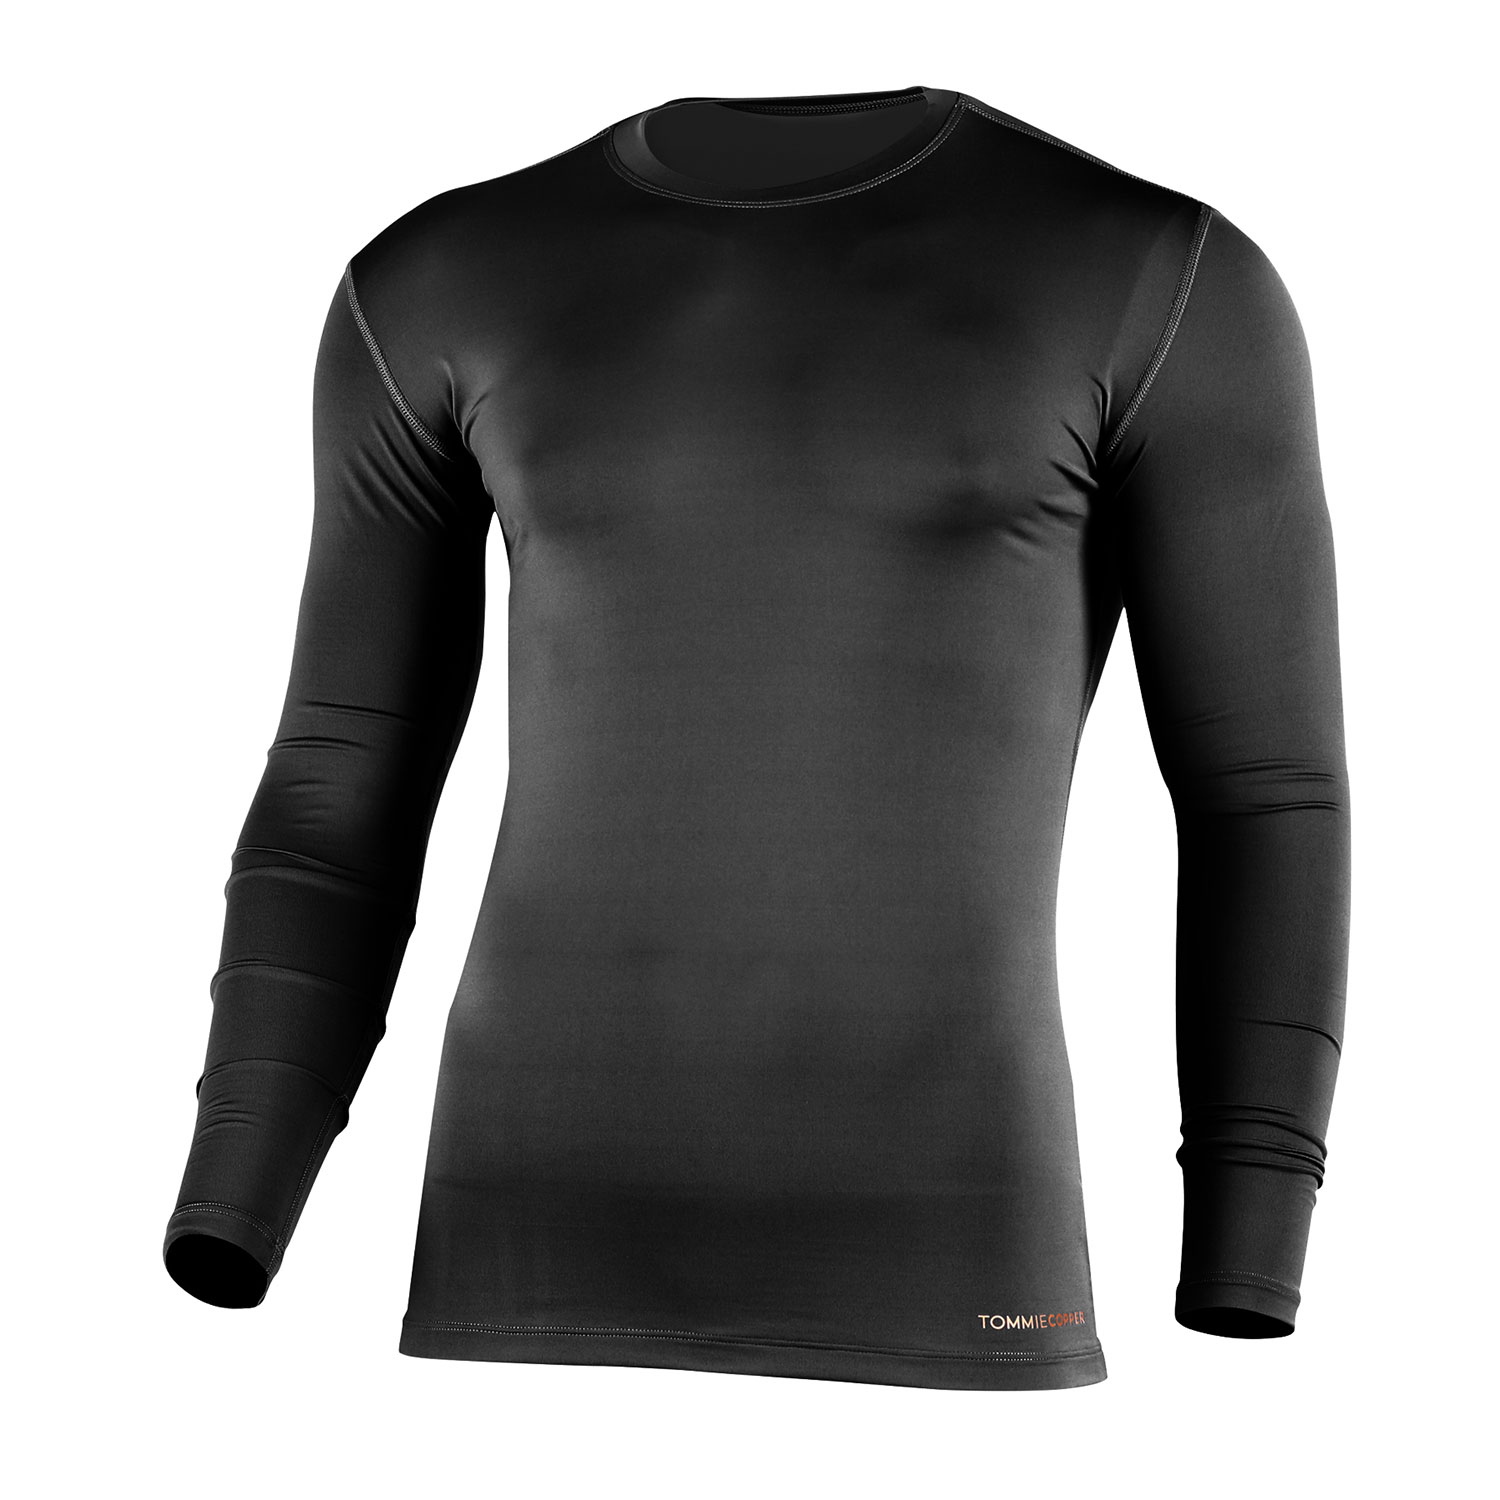 df9f576a8c2a1 Tommie Copper Men's Long Sleeve Compression Shirt